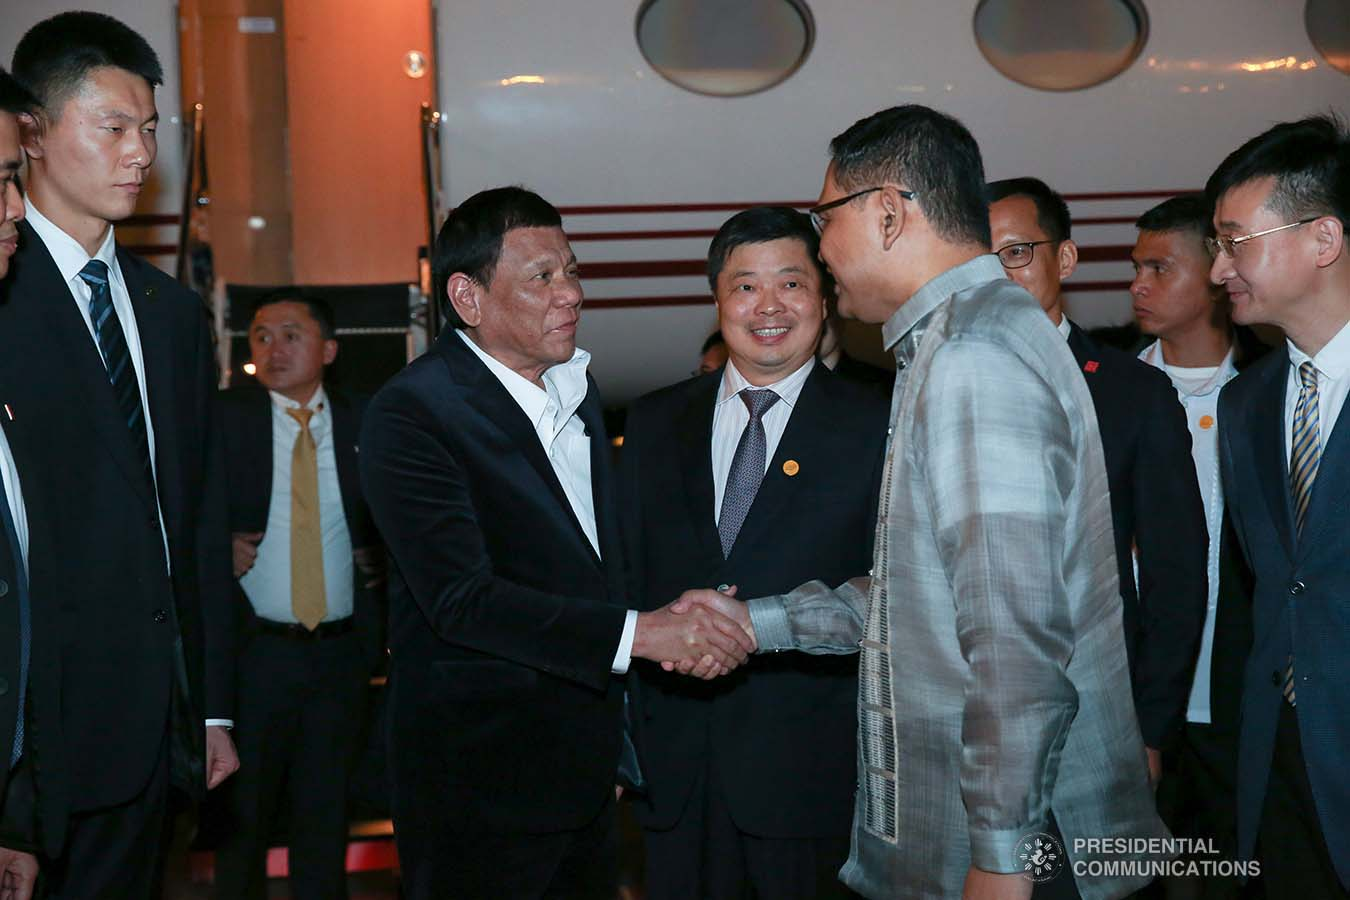 President Rodrigo Roa Duterte receives a warm welcome from Consul General Marshall Alferez upon his arrival at the Guangzhou Baiyun International Airport in Guangdong Province, People's Republic of China on August 30, 2019. ALBERT ALCAIN/PRESIDENTIAL PHOTO